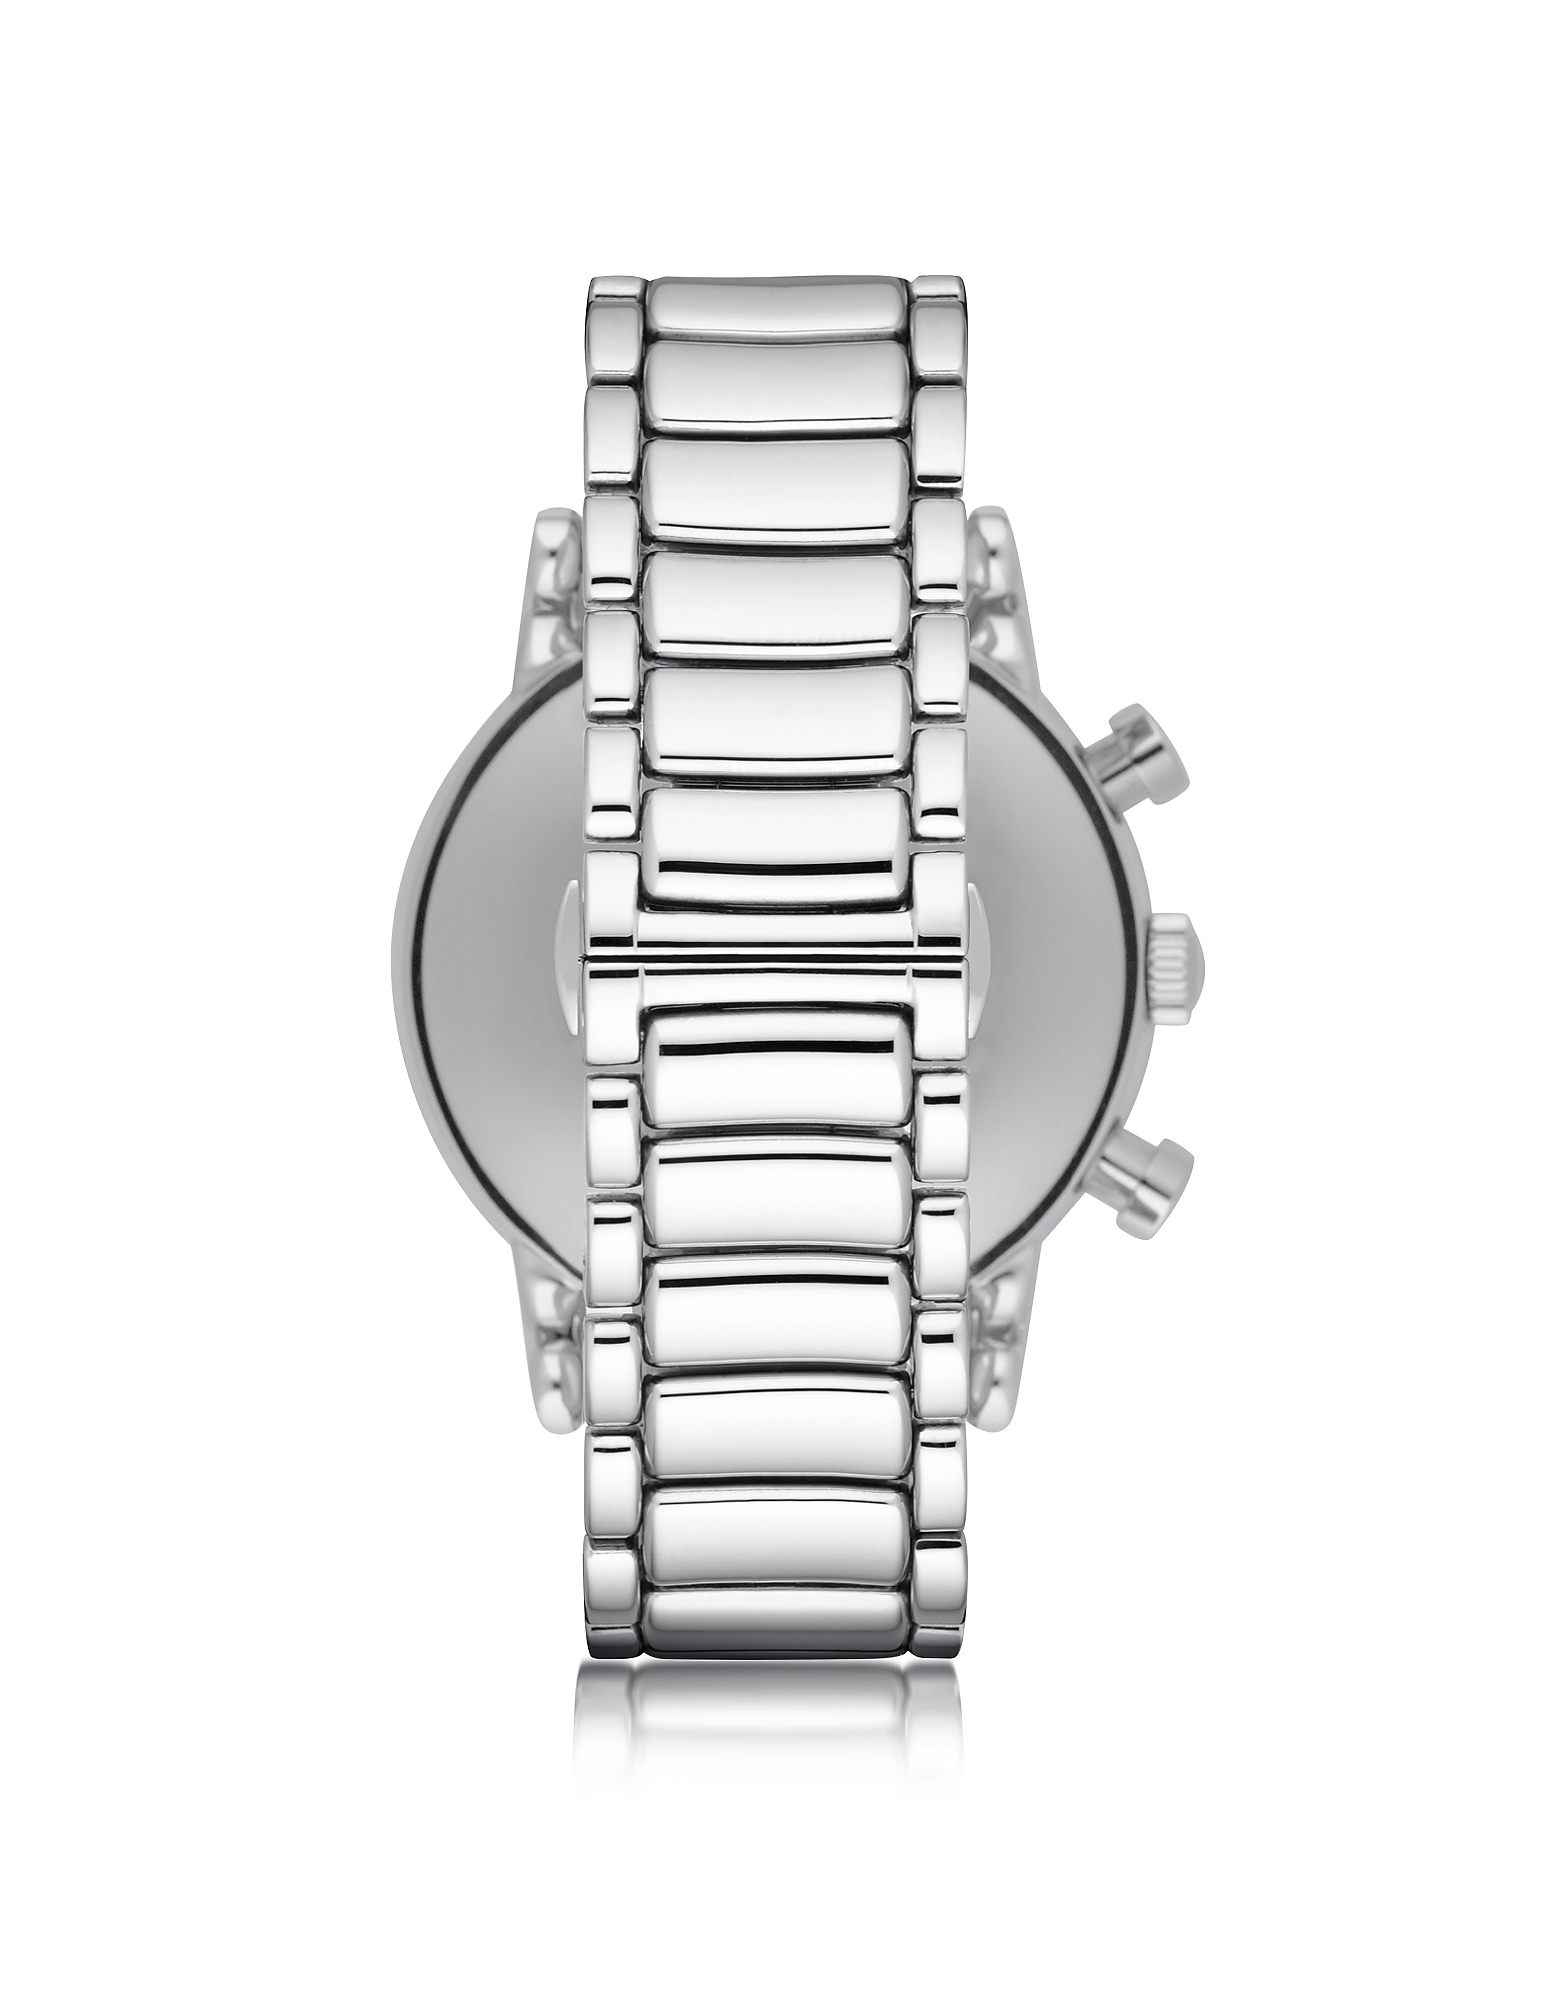 Silvertone Stainless Steel Men's Watch w/Black Dial от Forzieri.com INT